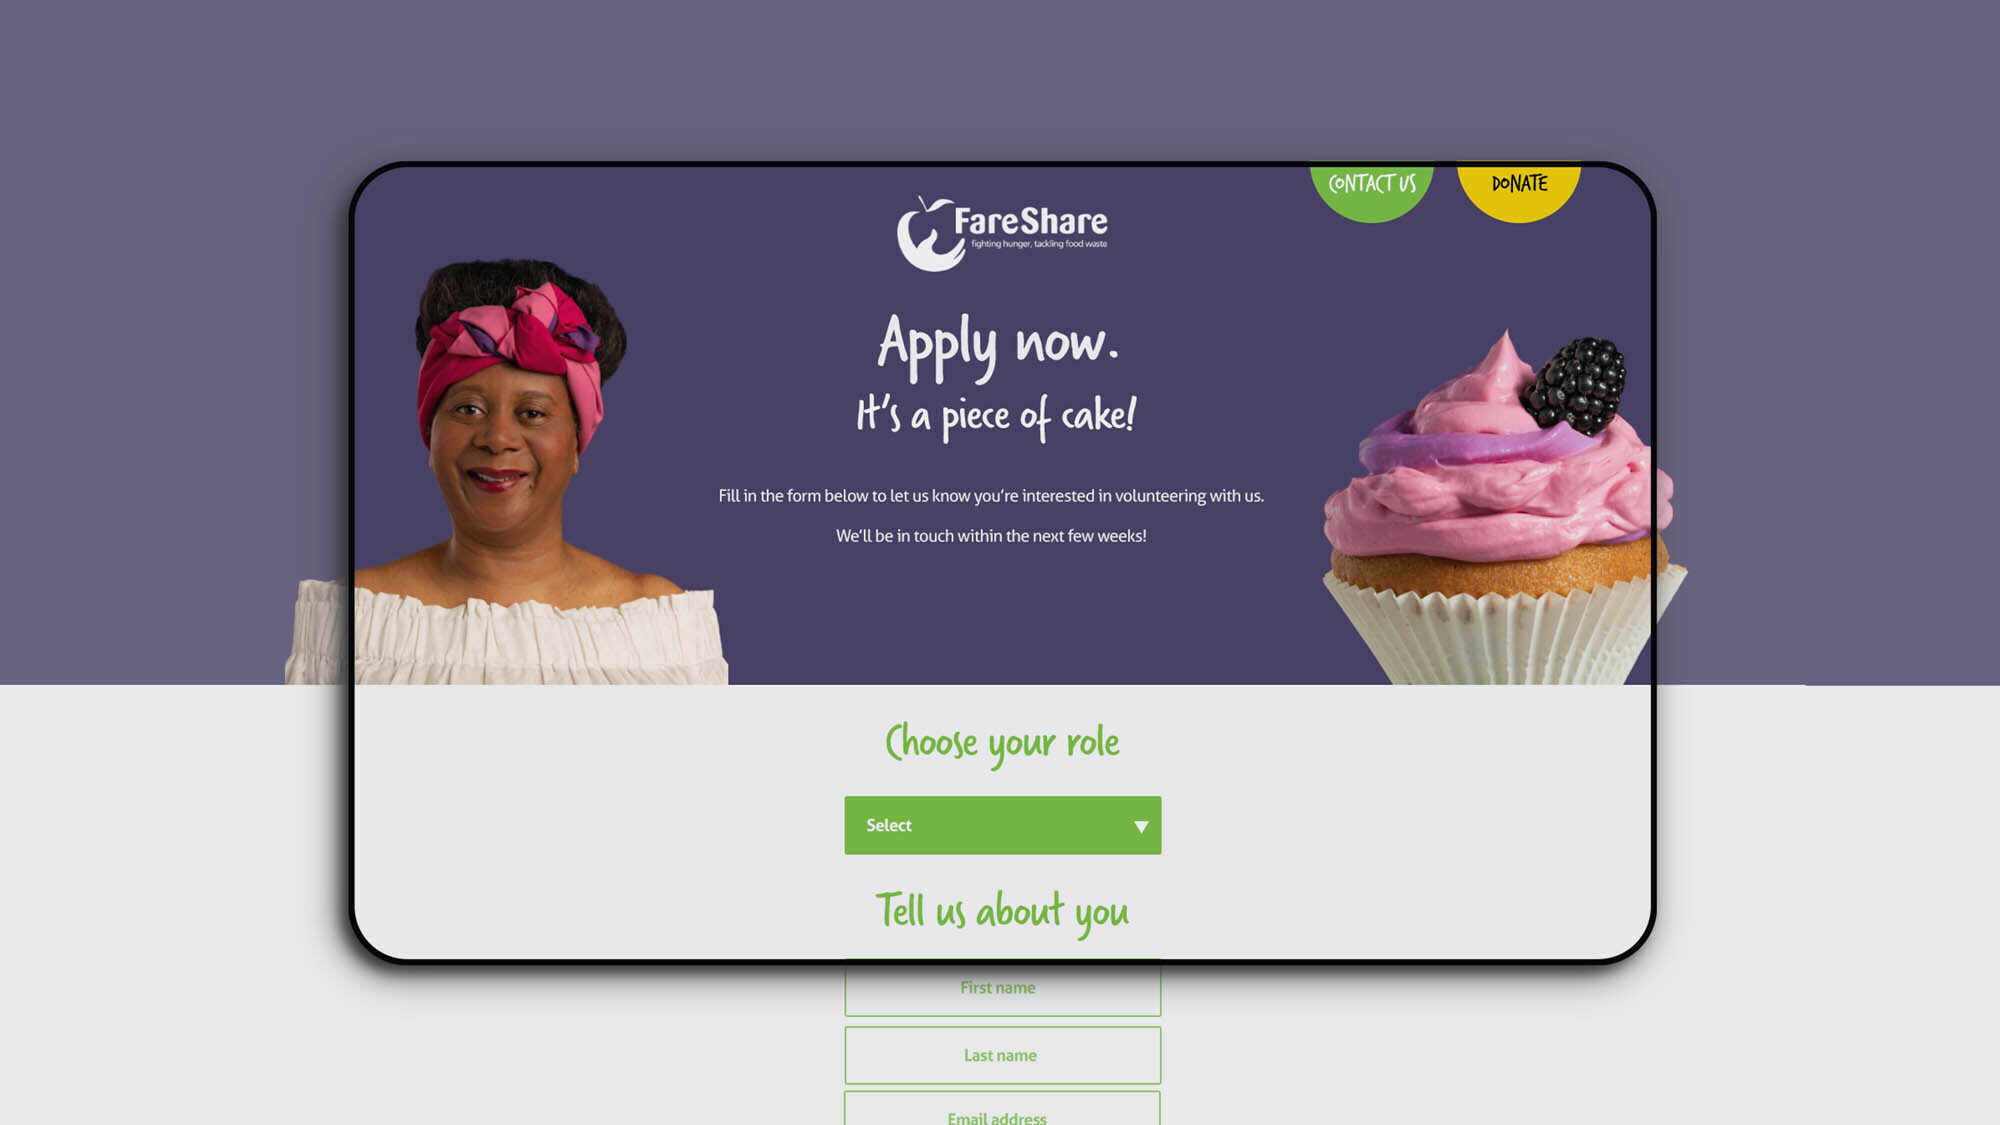 FareShare's volunteer campaign home page